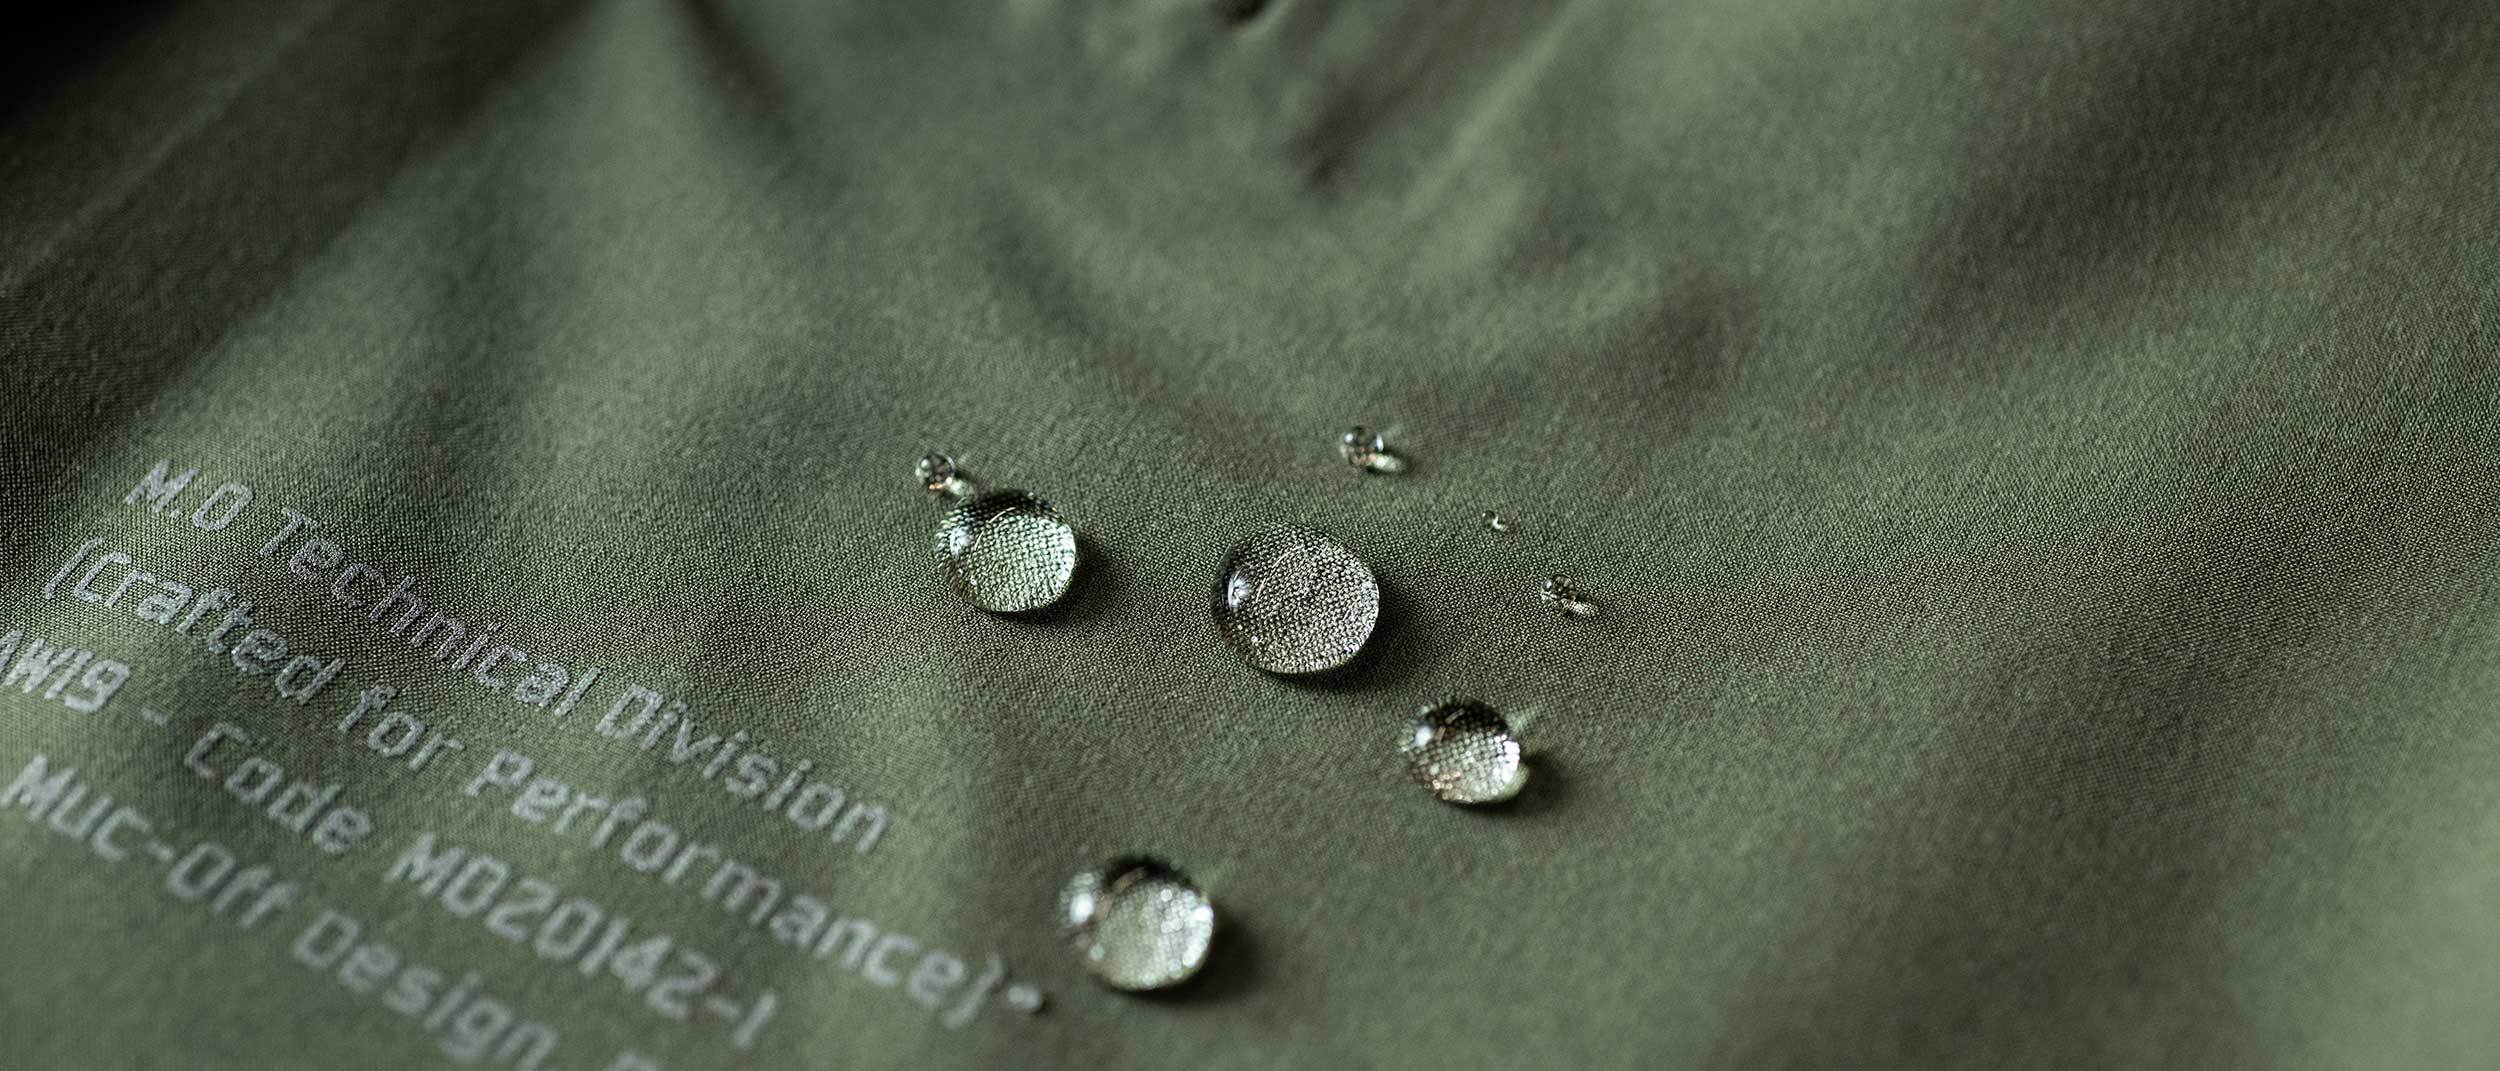 Water droplets on the material which is hydrophobic